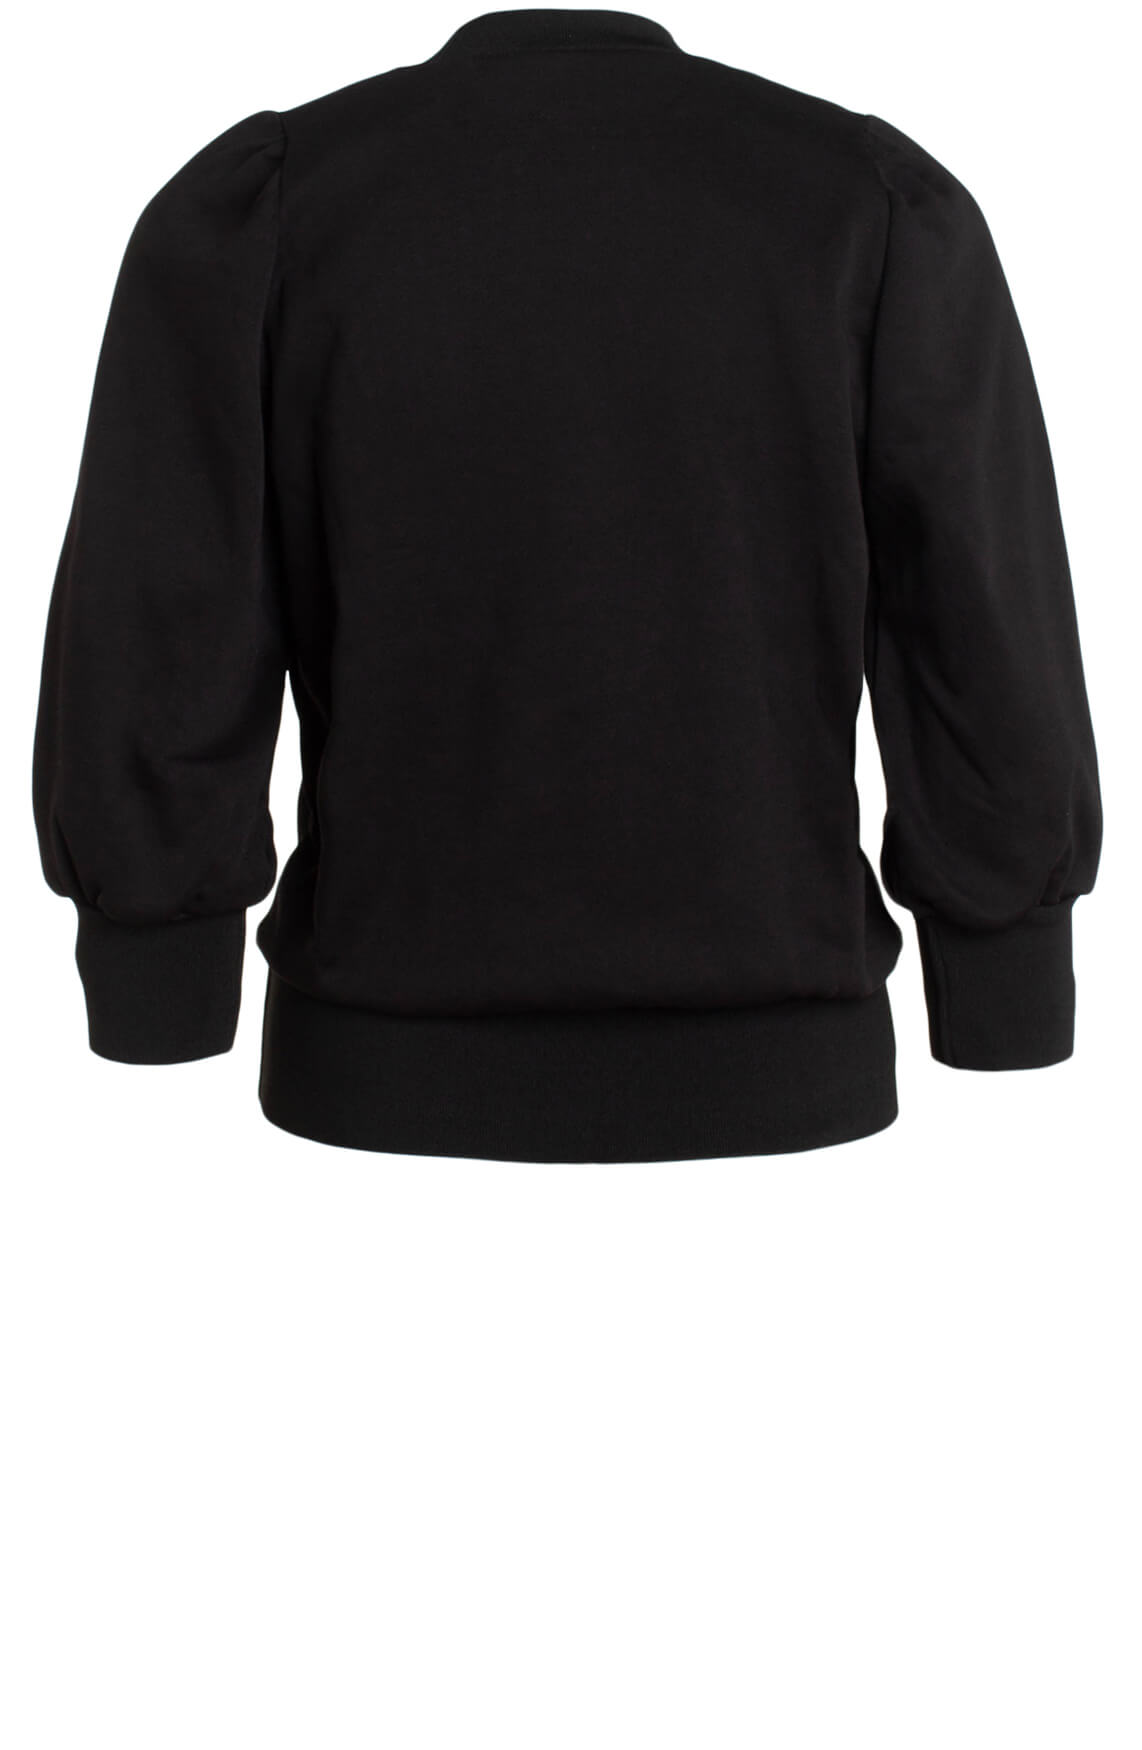 Co Couture Dames Solid chop sweater zwart